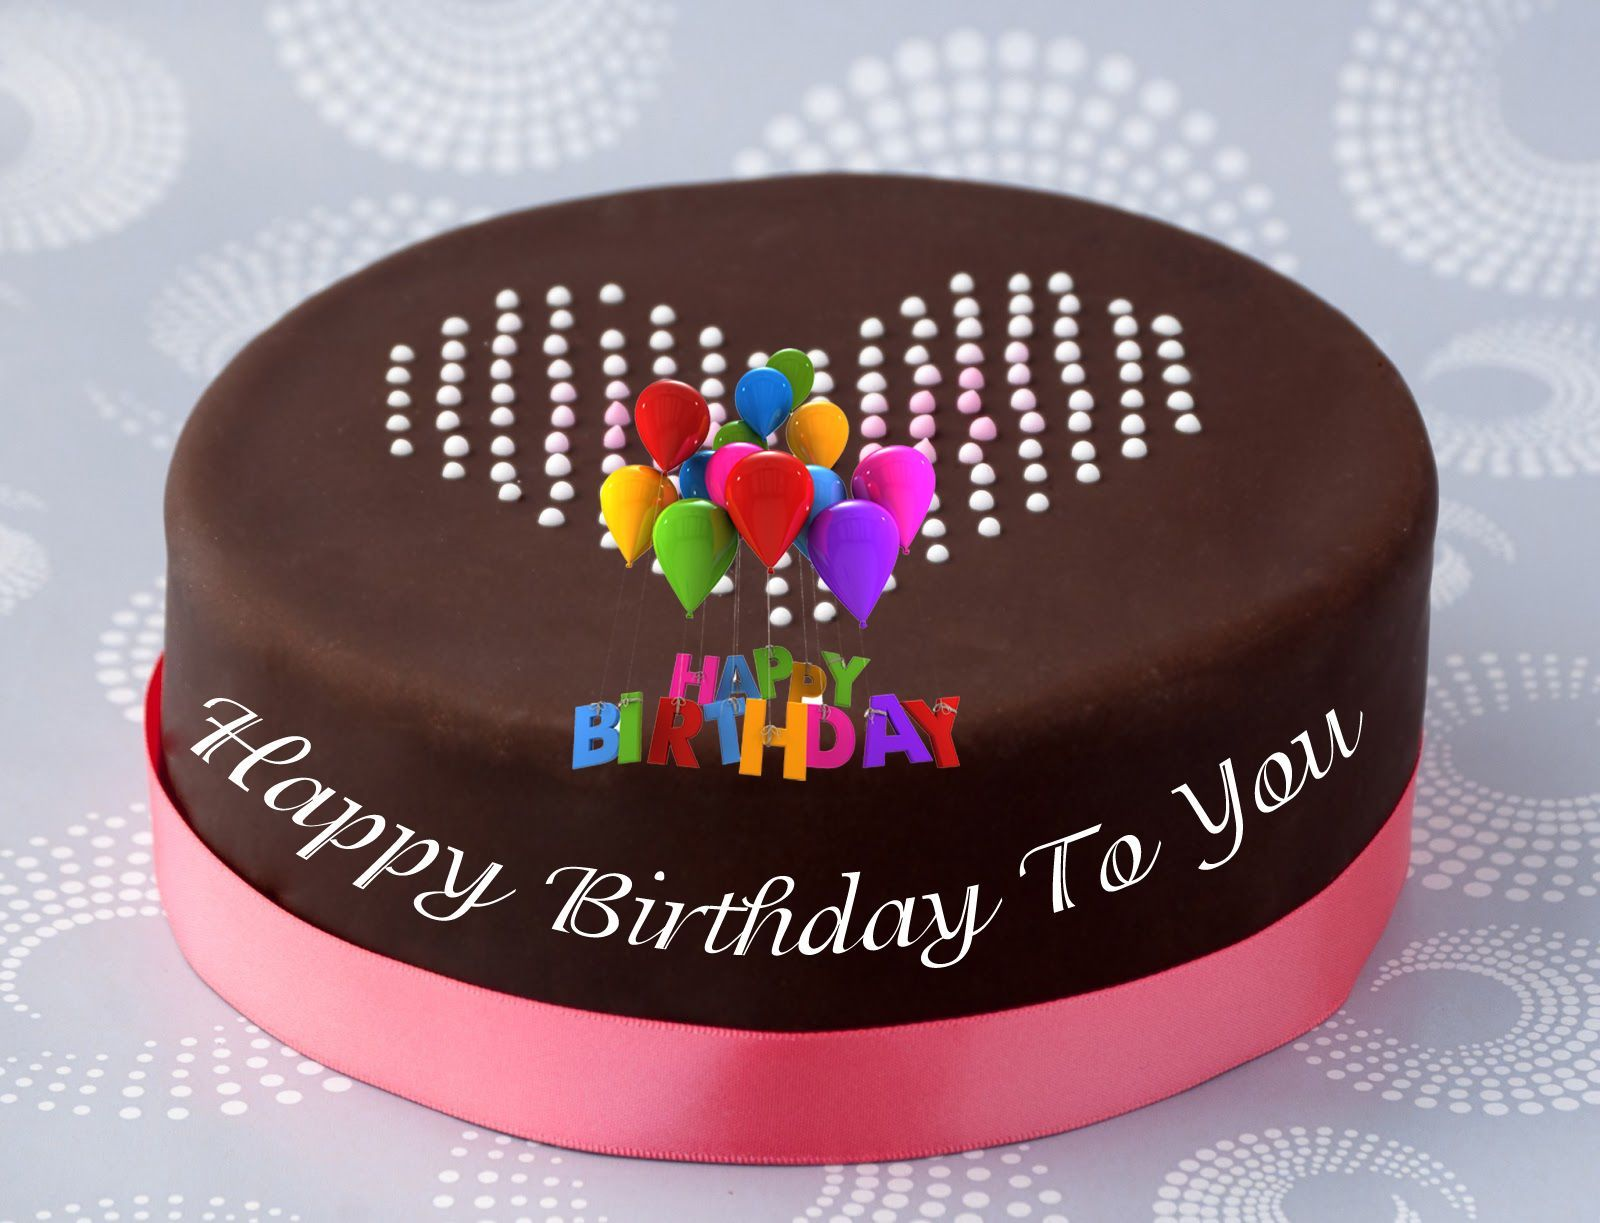 Happy Birthday Cake Images Free Download Happy Birthday